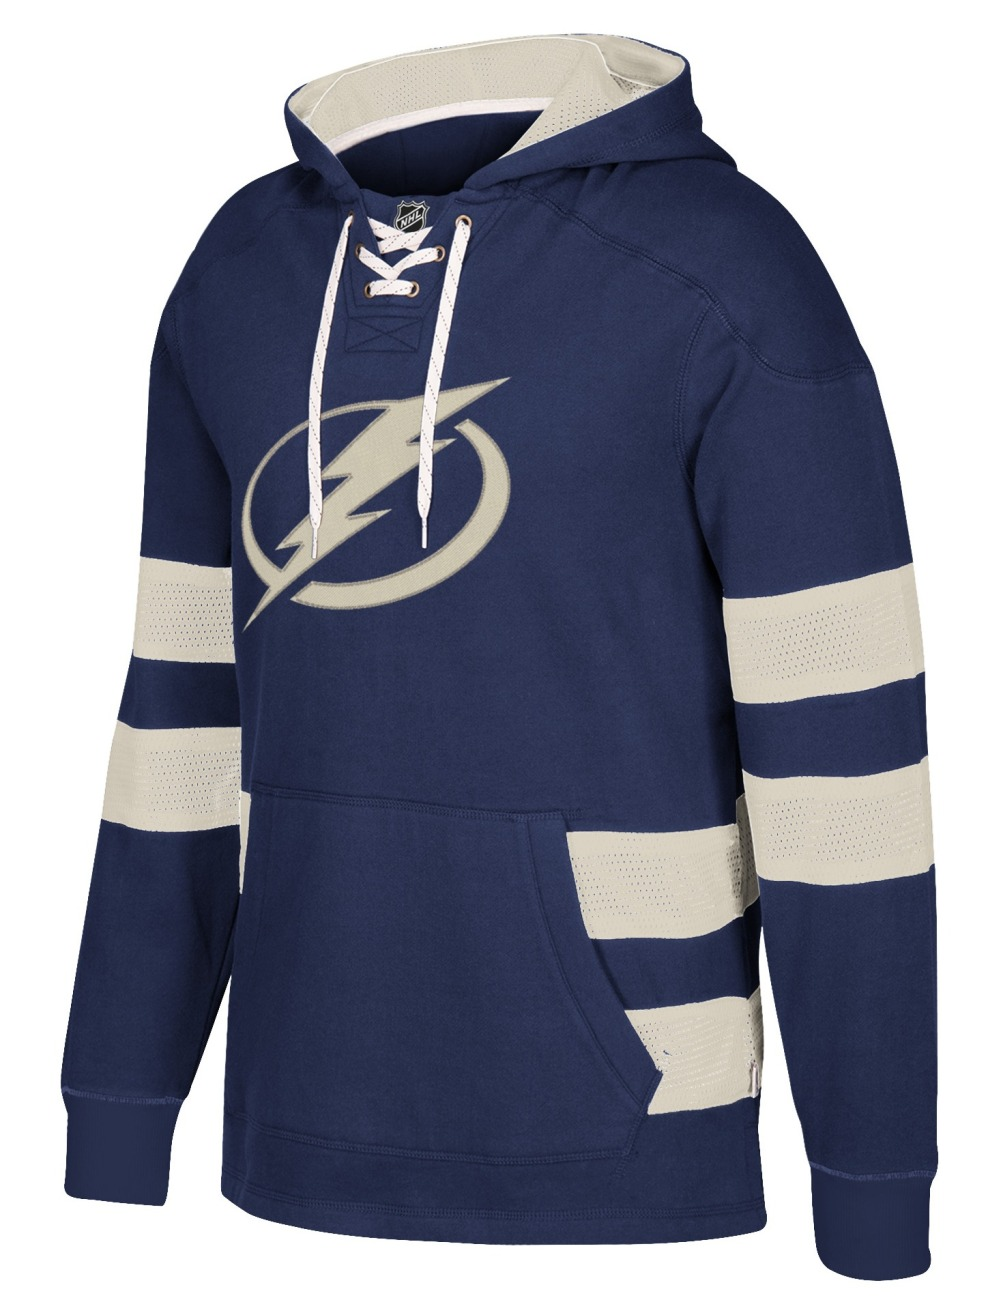 "Tampa Bay Lightning CCM NHL ""Penalty Kill"" Men's Vintage Jersey Sweatshirt"